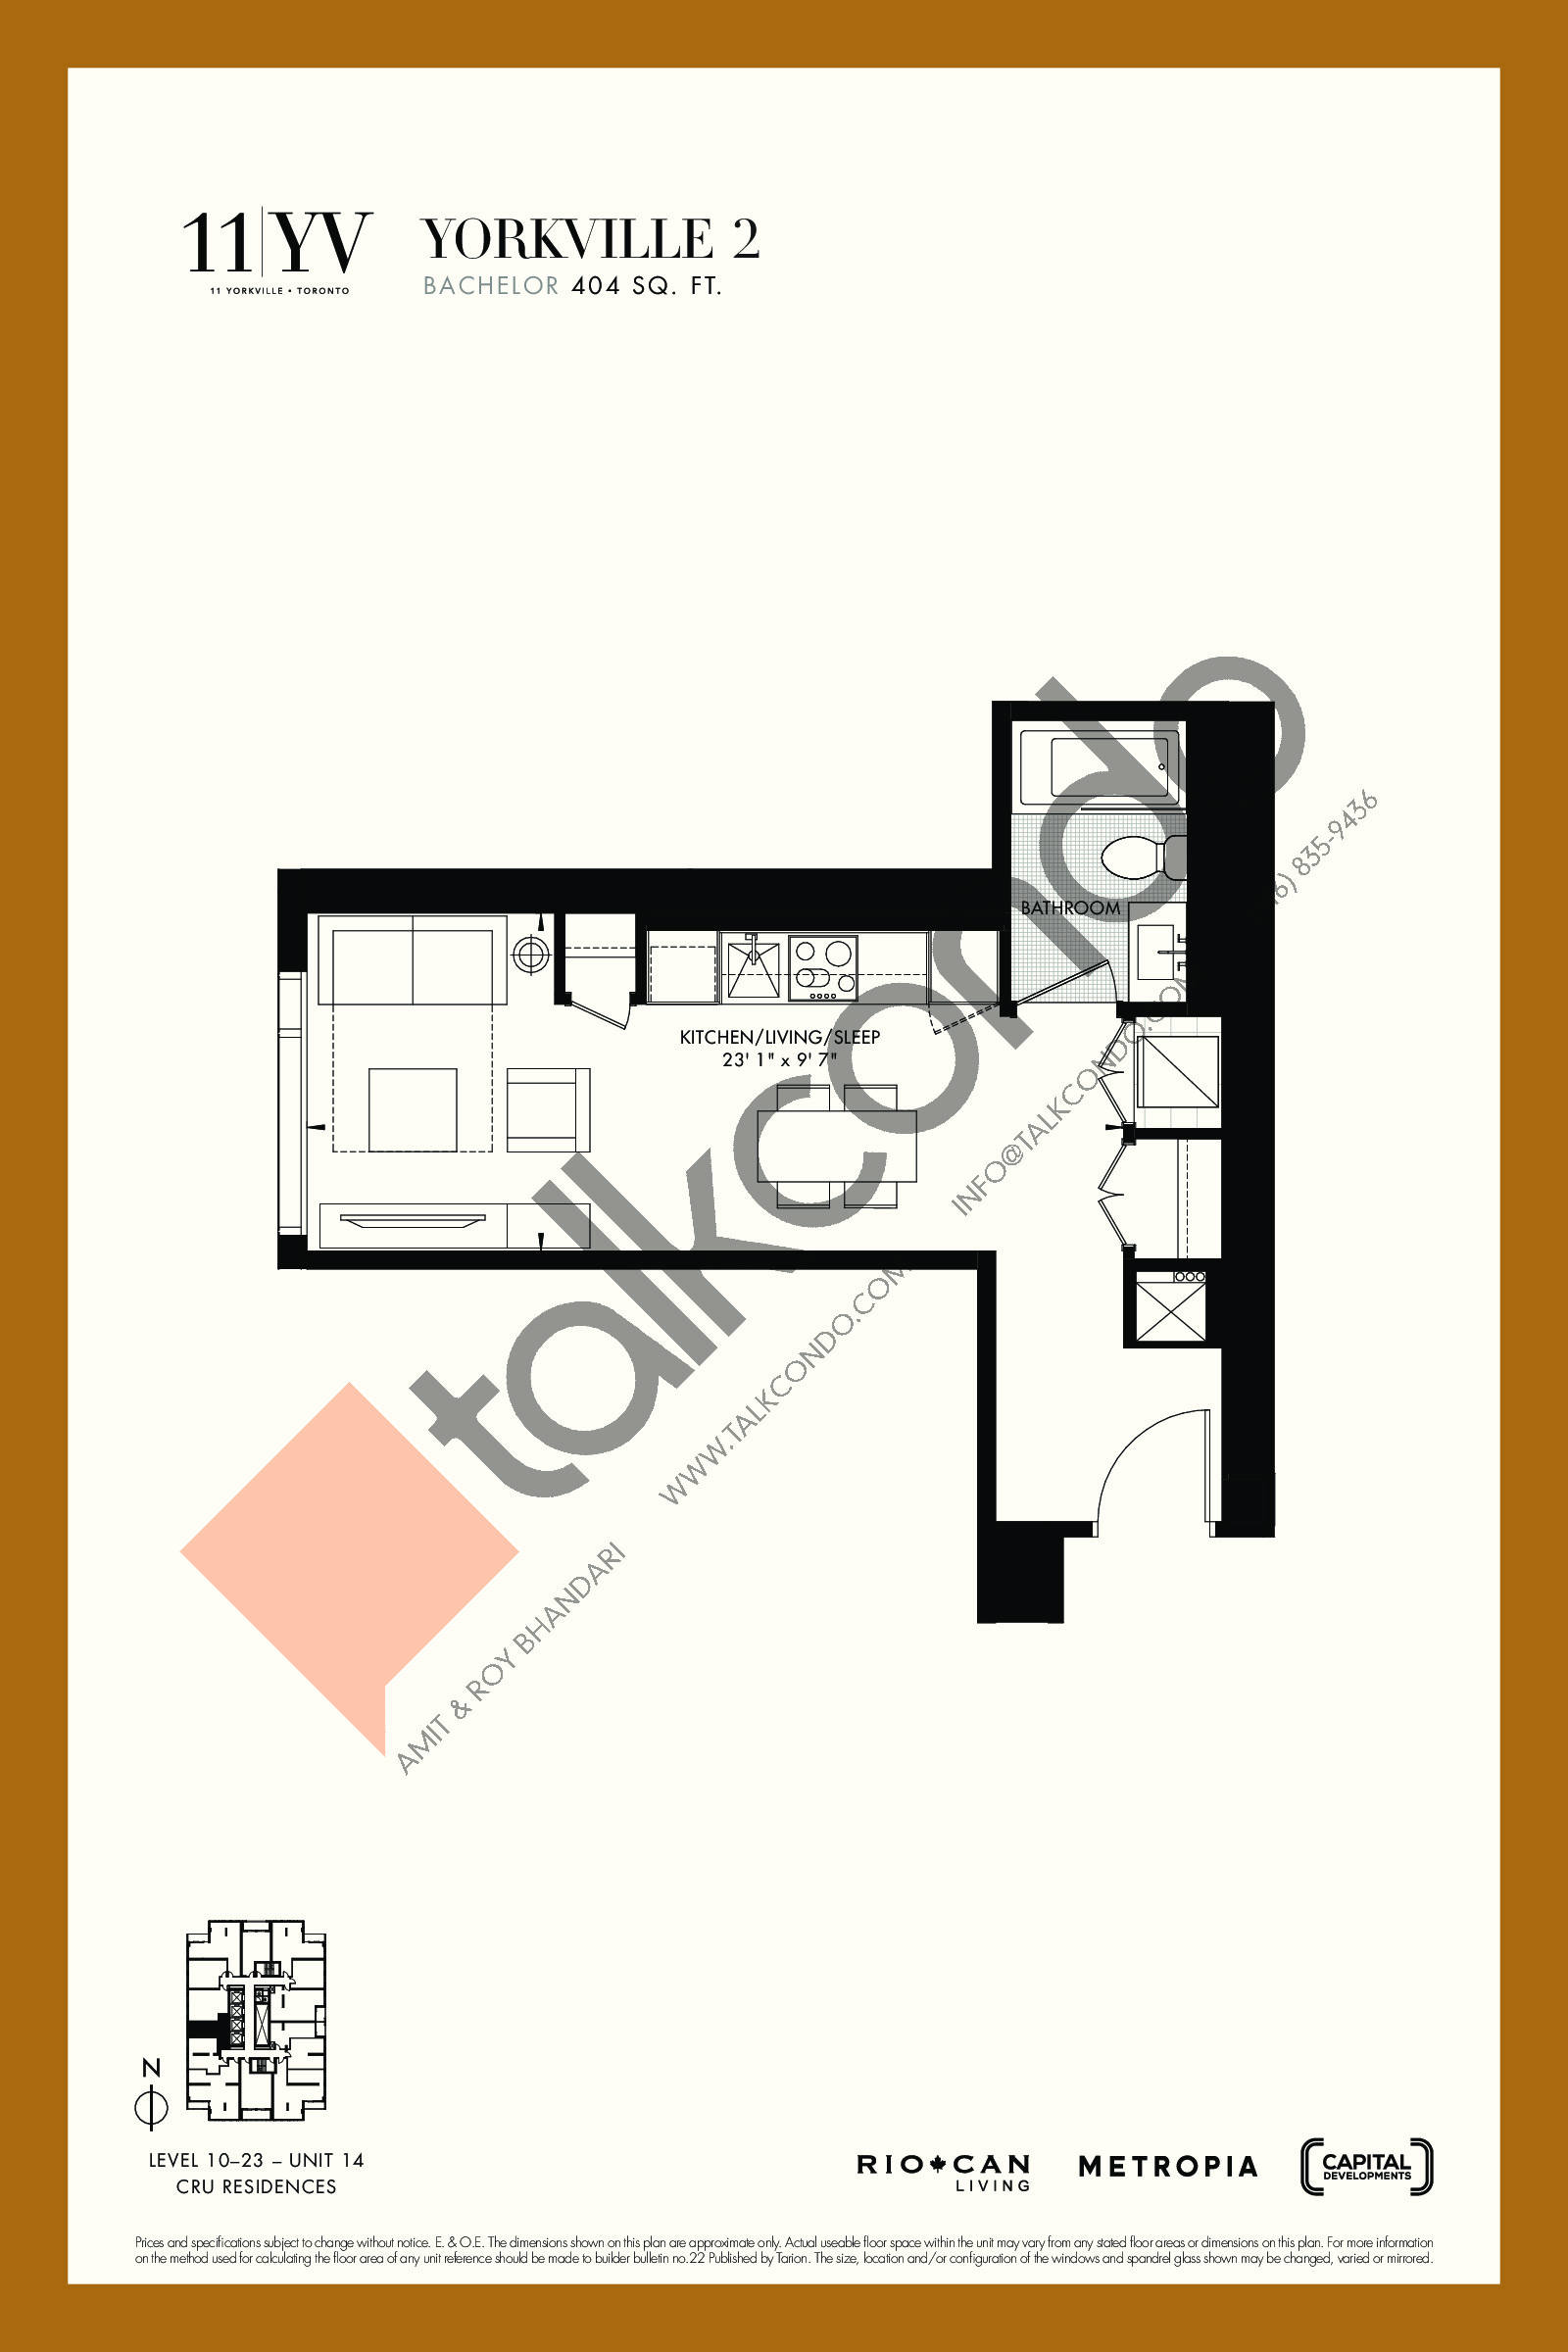 Yorkville 2 Floor Plan at 11YV Condos - 404 sq.ft